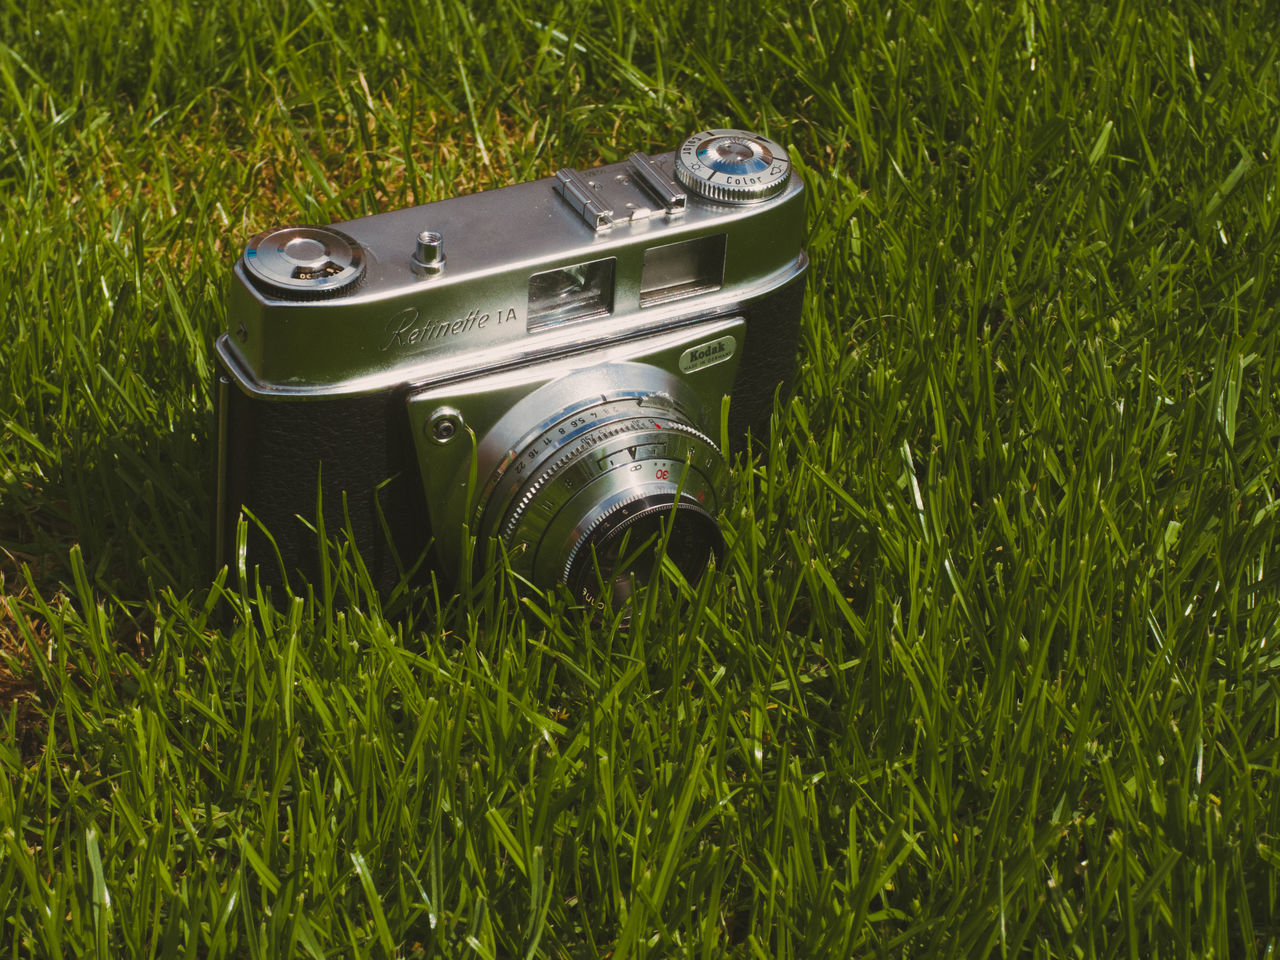 grass, green color, technology, no people, camera - photographic equipment, field, growth, outdoors, photography themes, close-up, day, camera flash